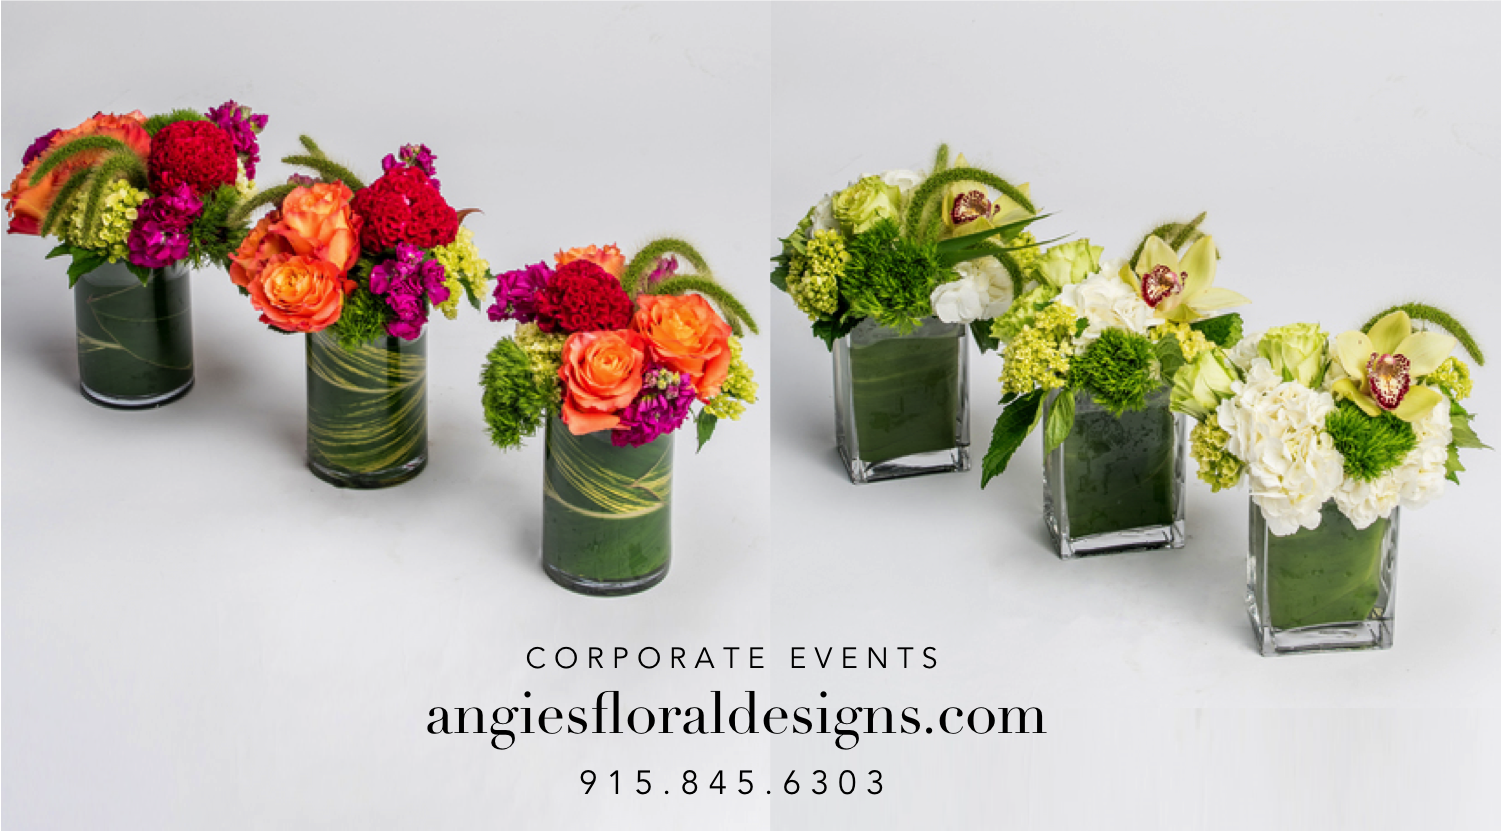 -.angies-floral-designs-corporate-1-shop-online-el-paso-texas-florist-flower-delivery-weddings-events-79912.png